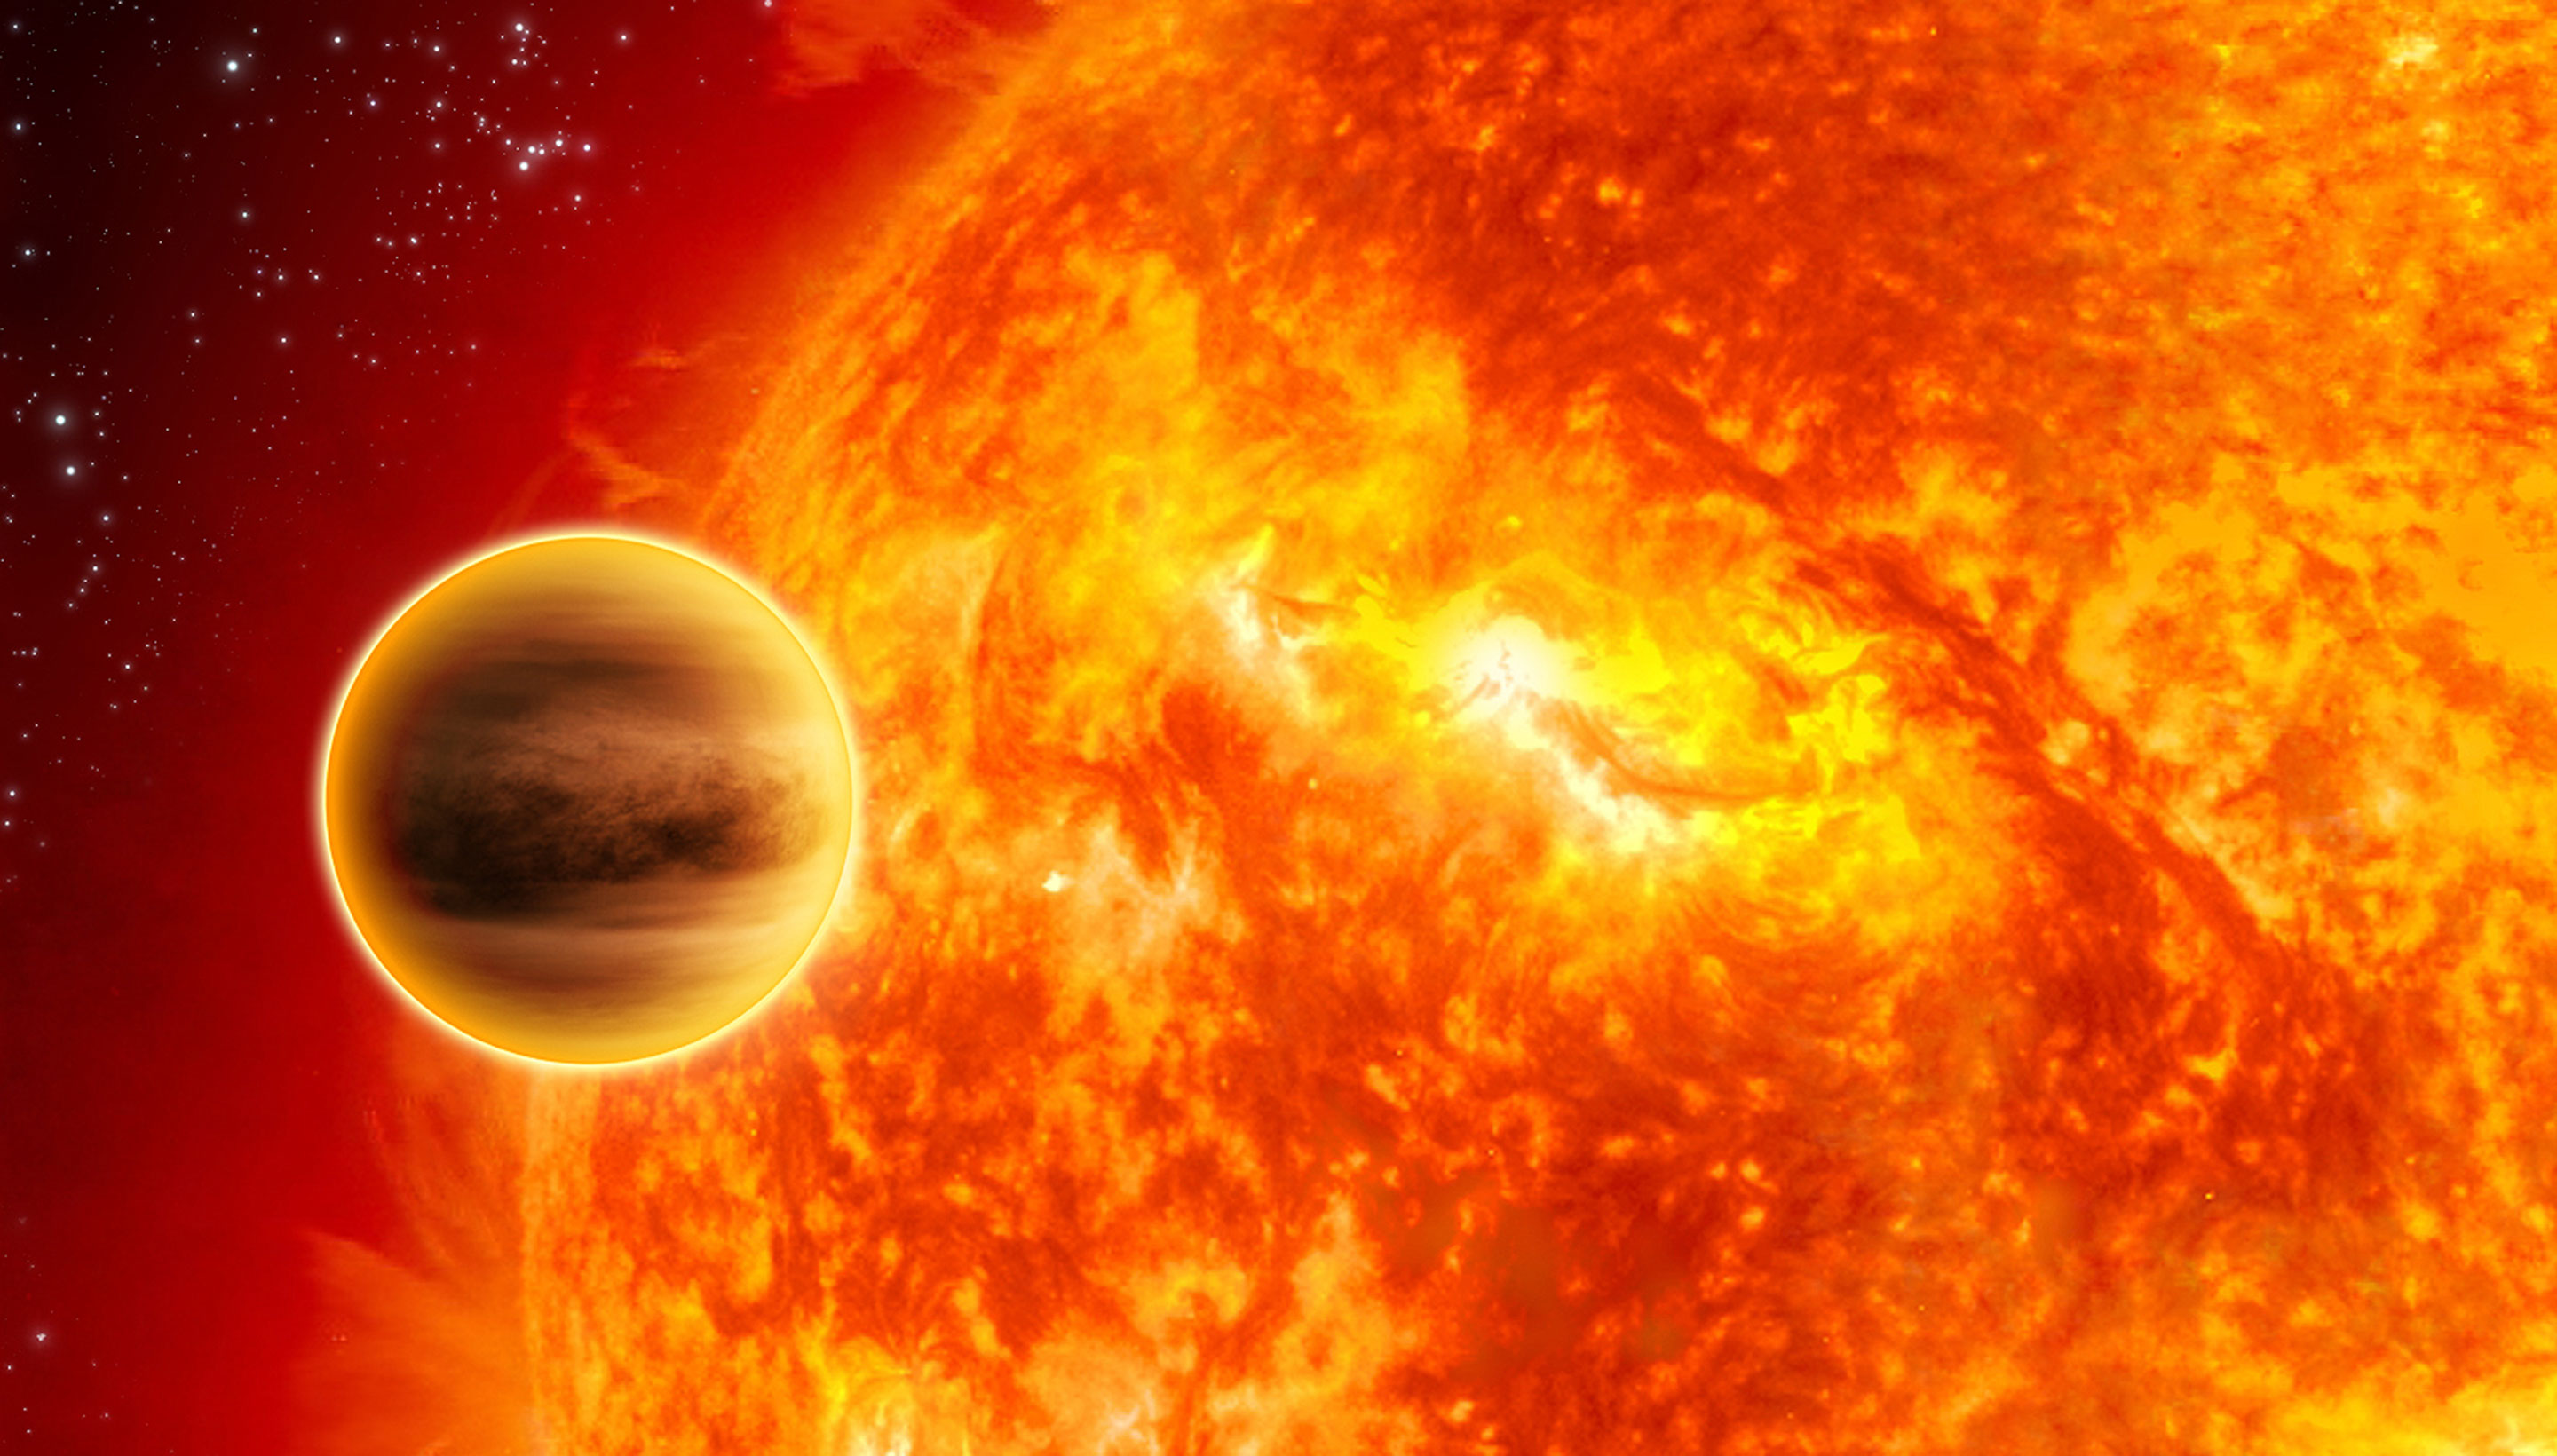 An illustration of a planet in front of a star.